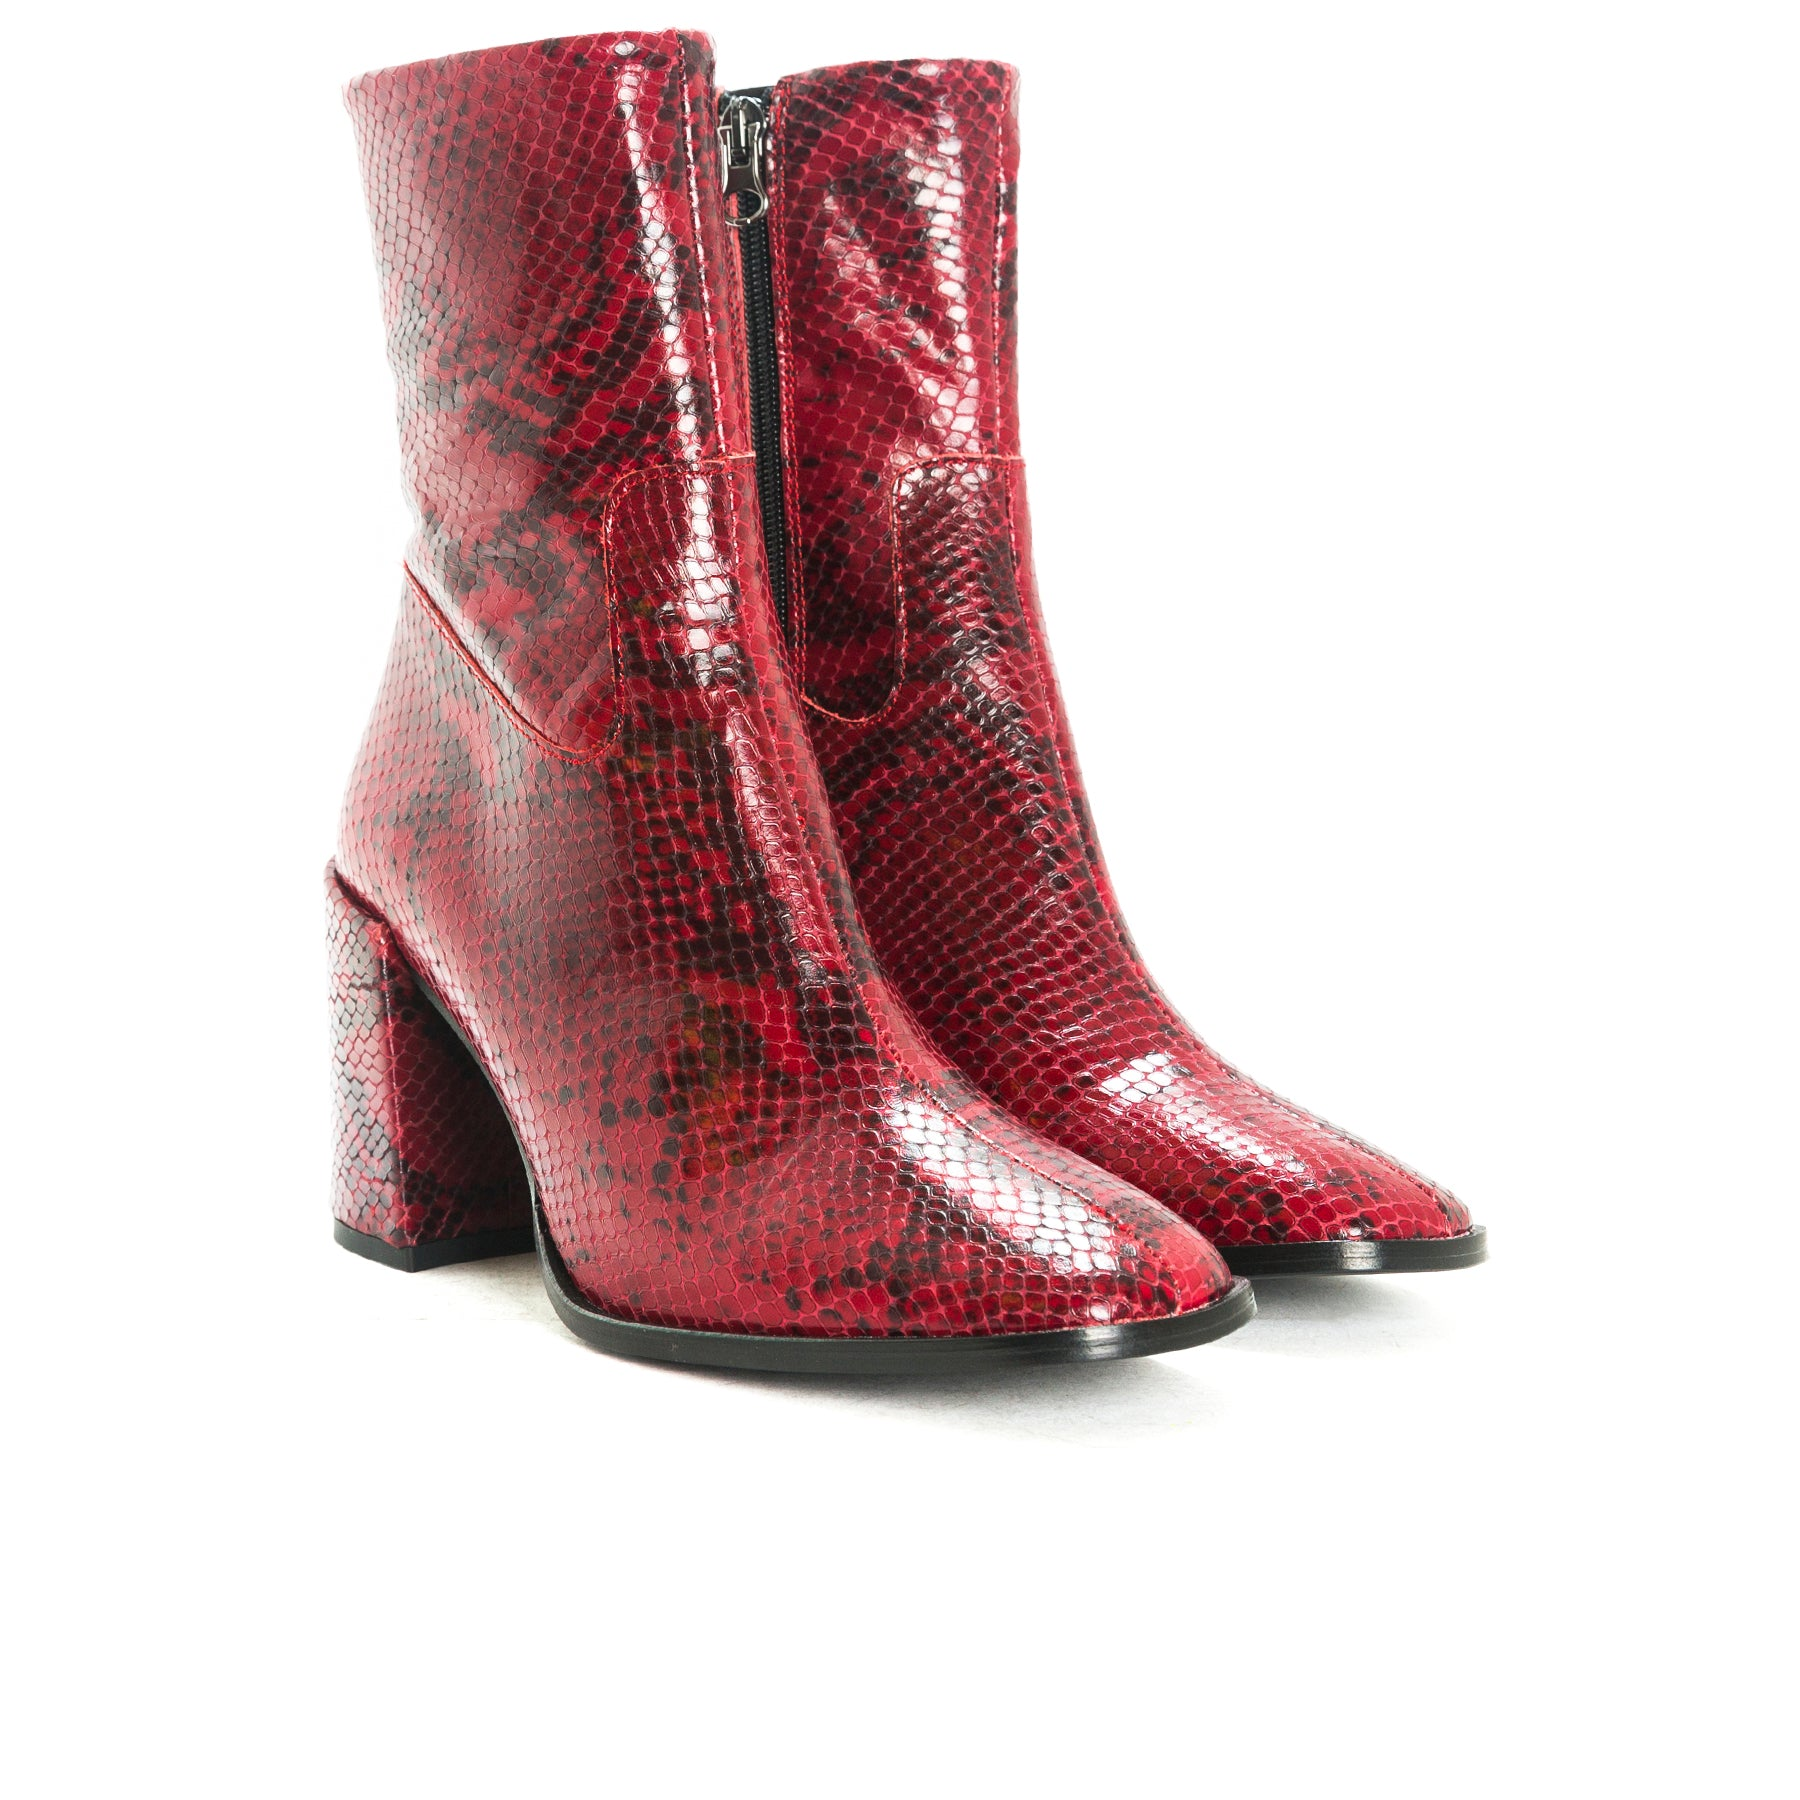 Malaga Red Snake Leather-SOLD OUT